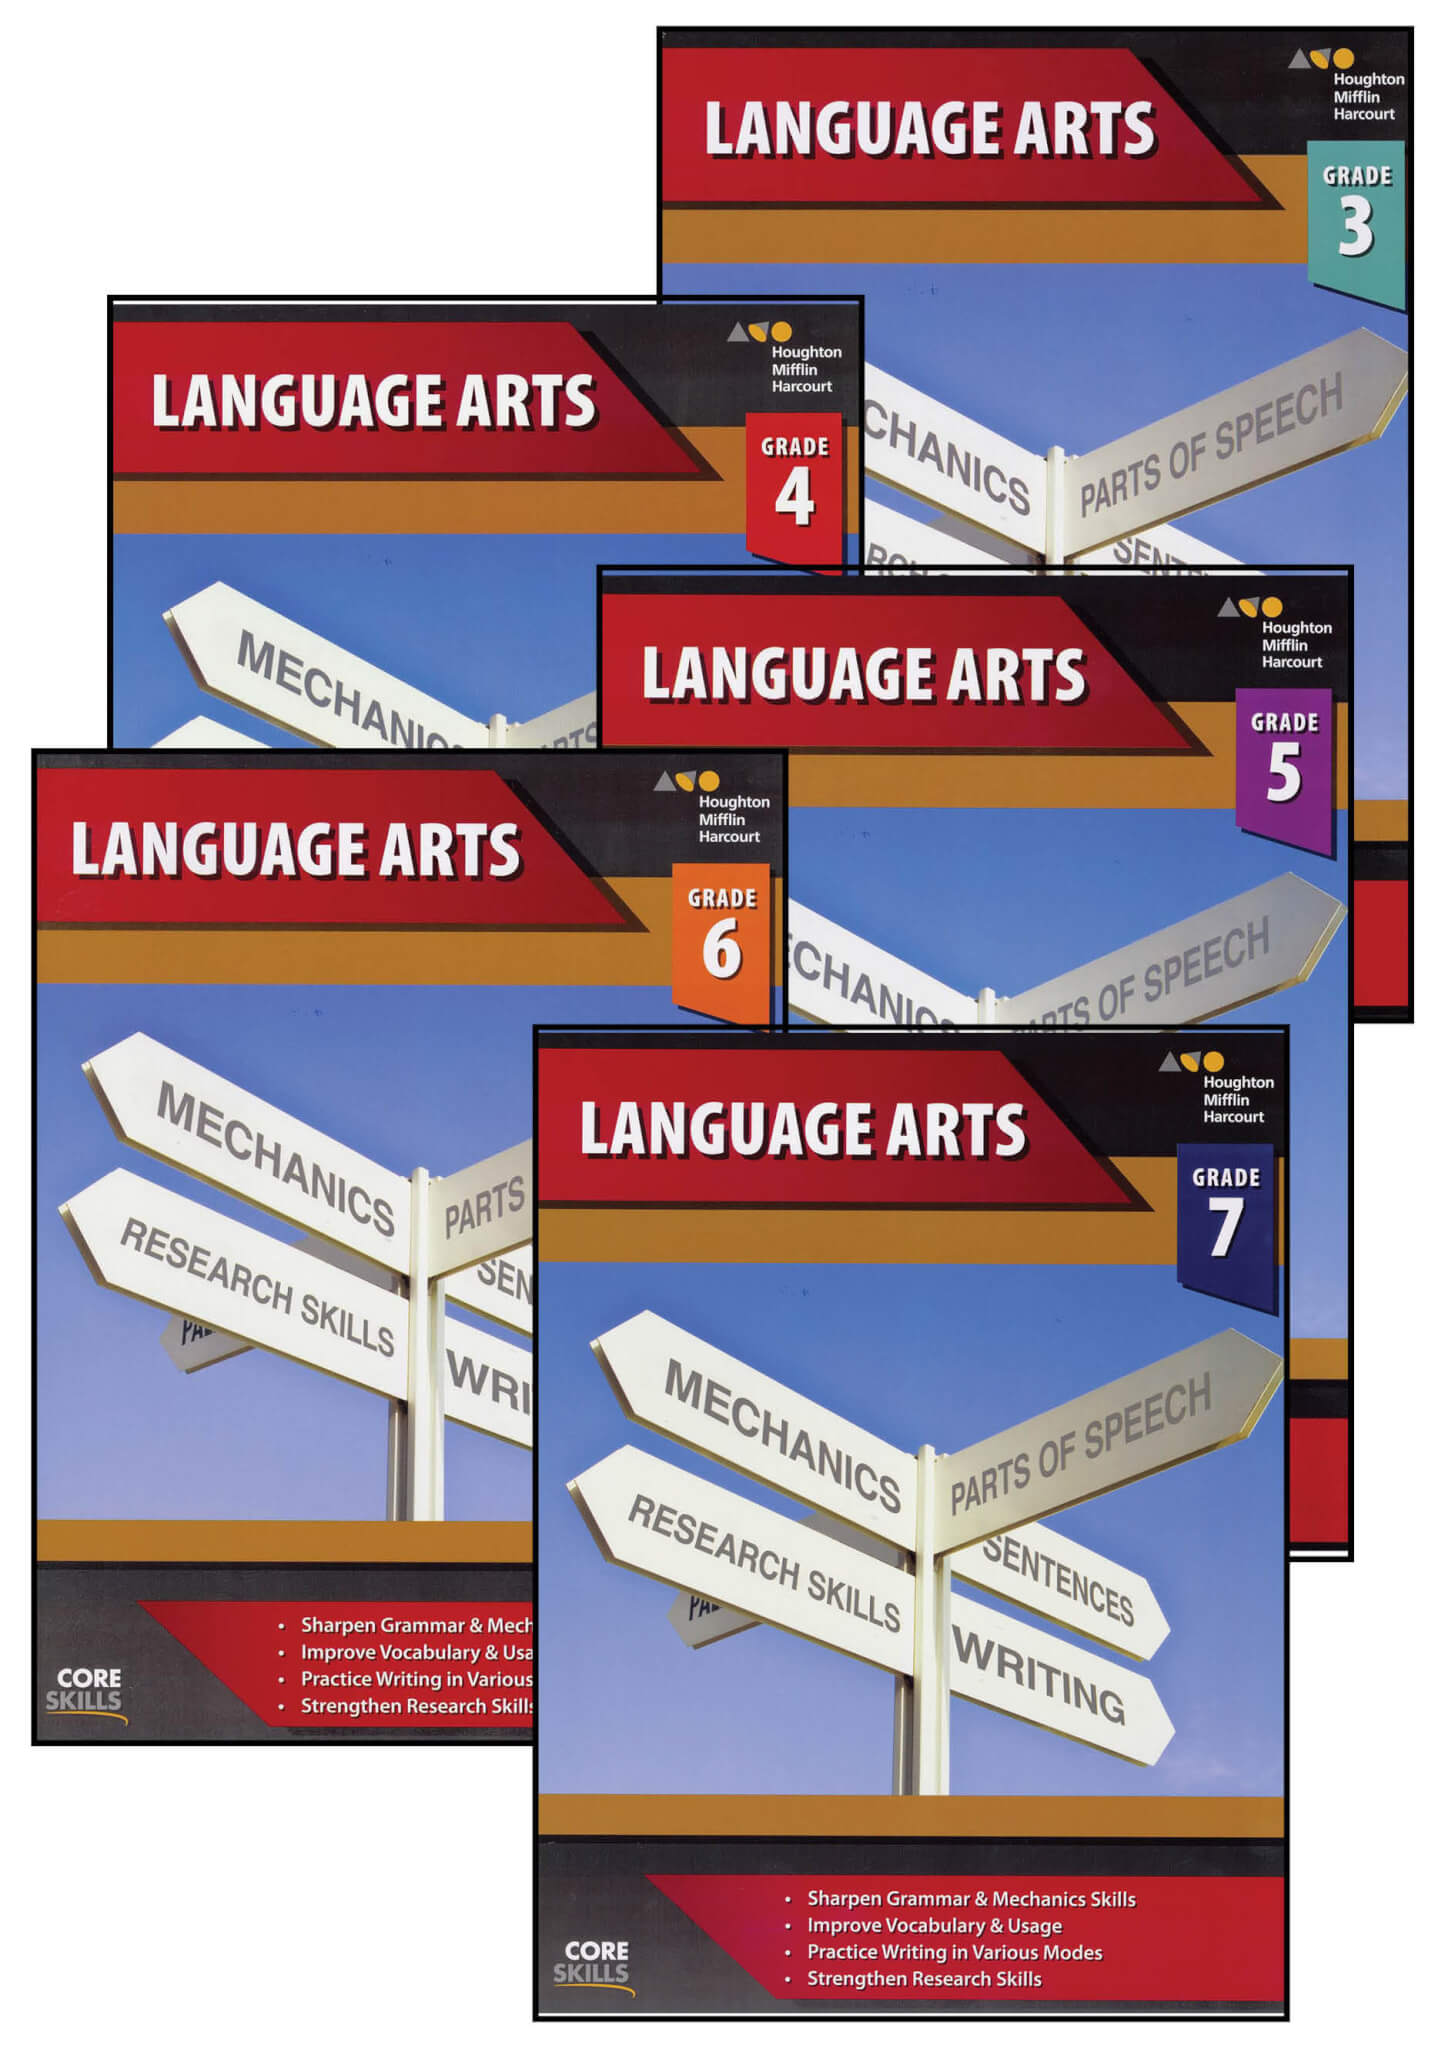 core skills language arts